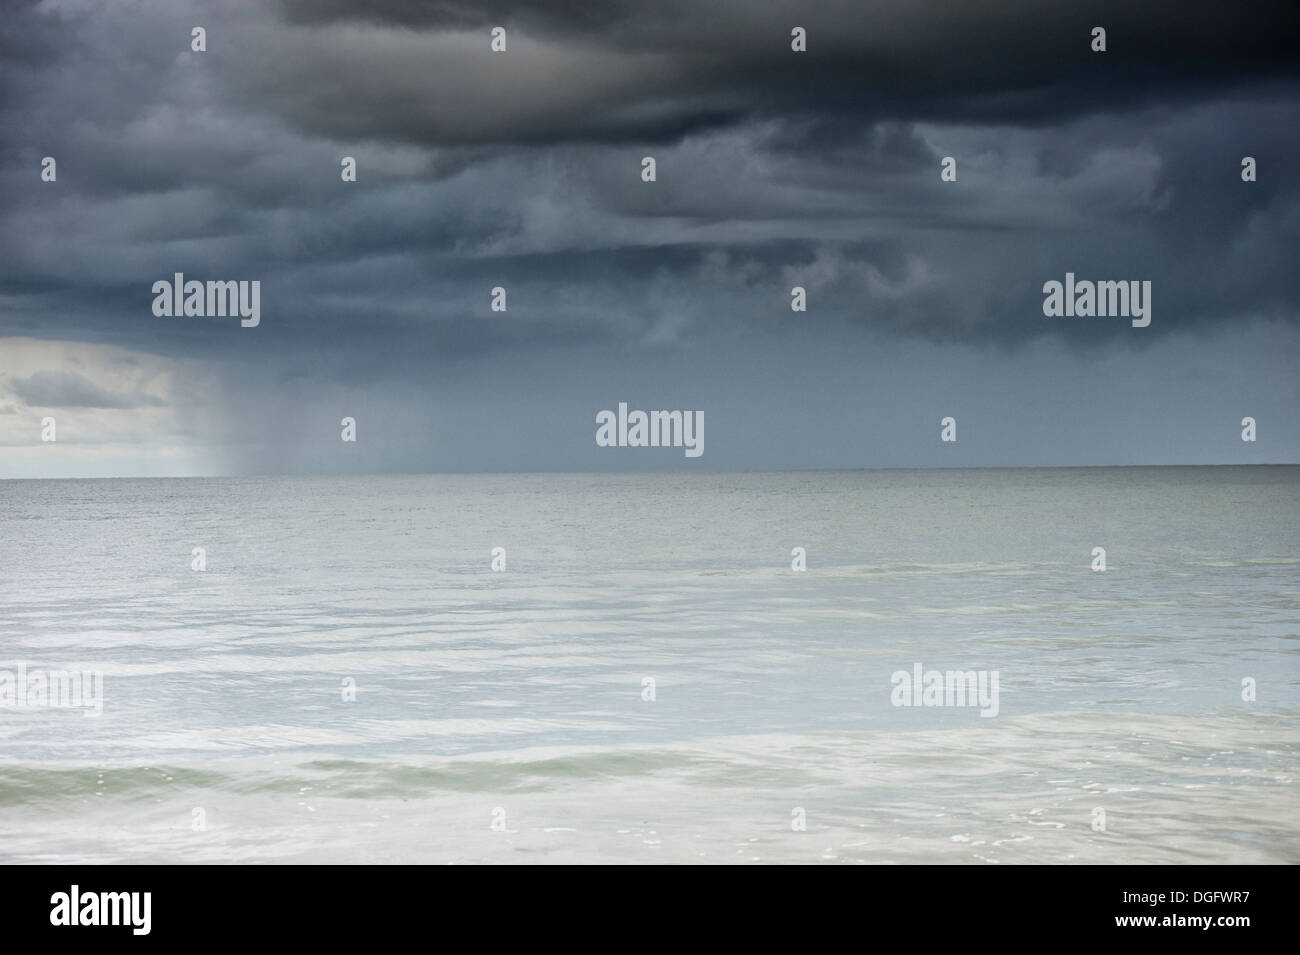 Squall over the sea - Stock Image